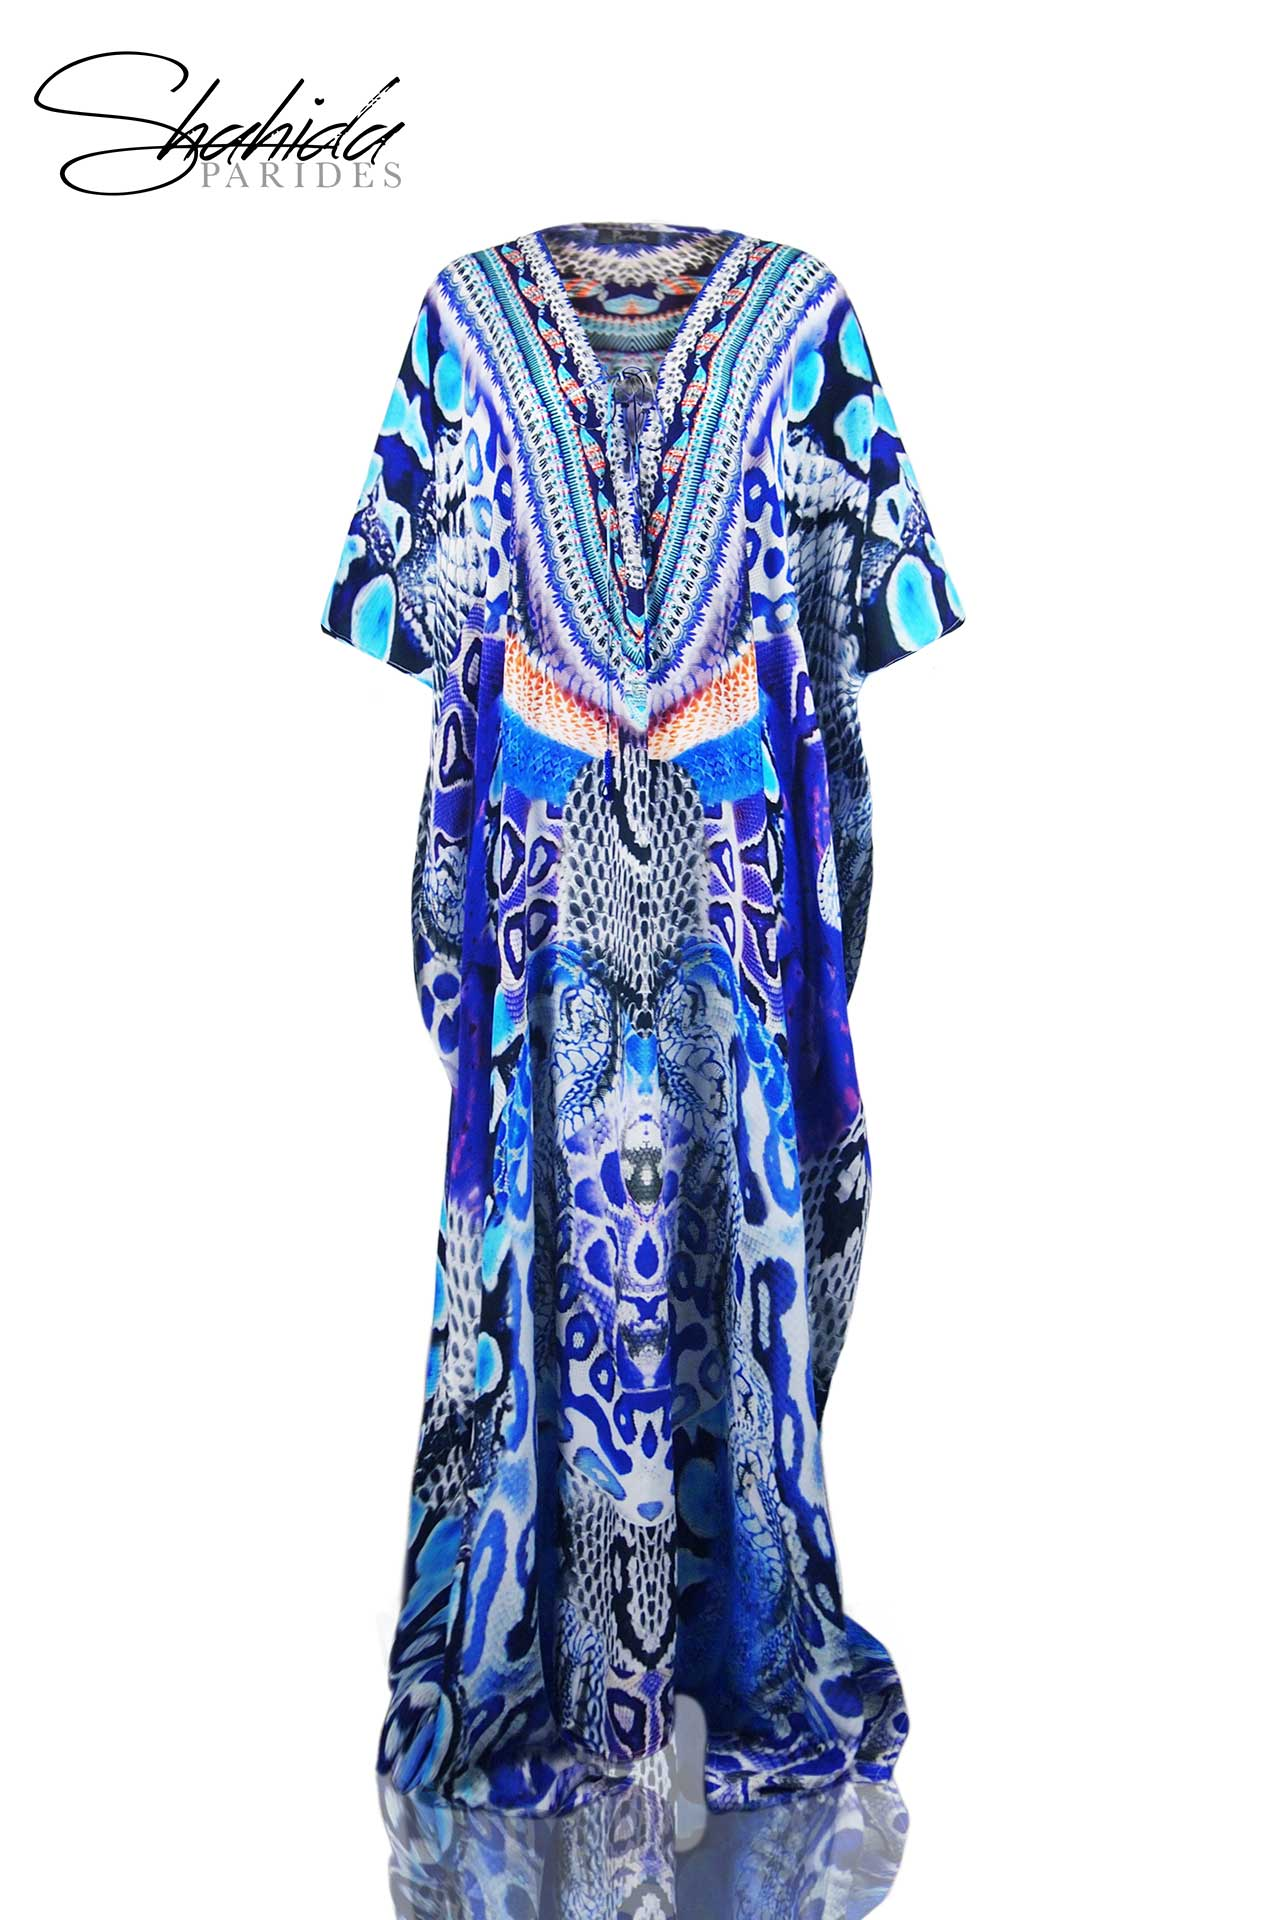 kathryn-edwards-kaftan-from-shahida-parides